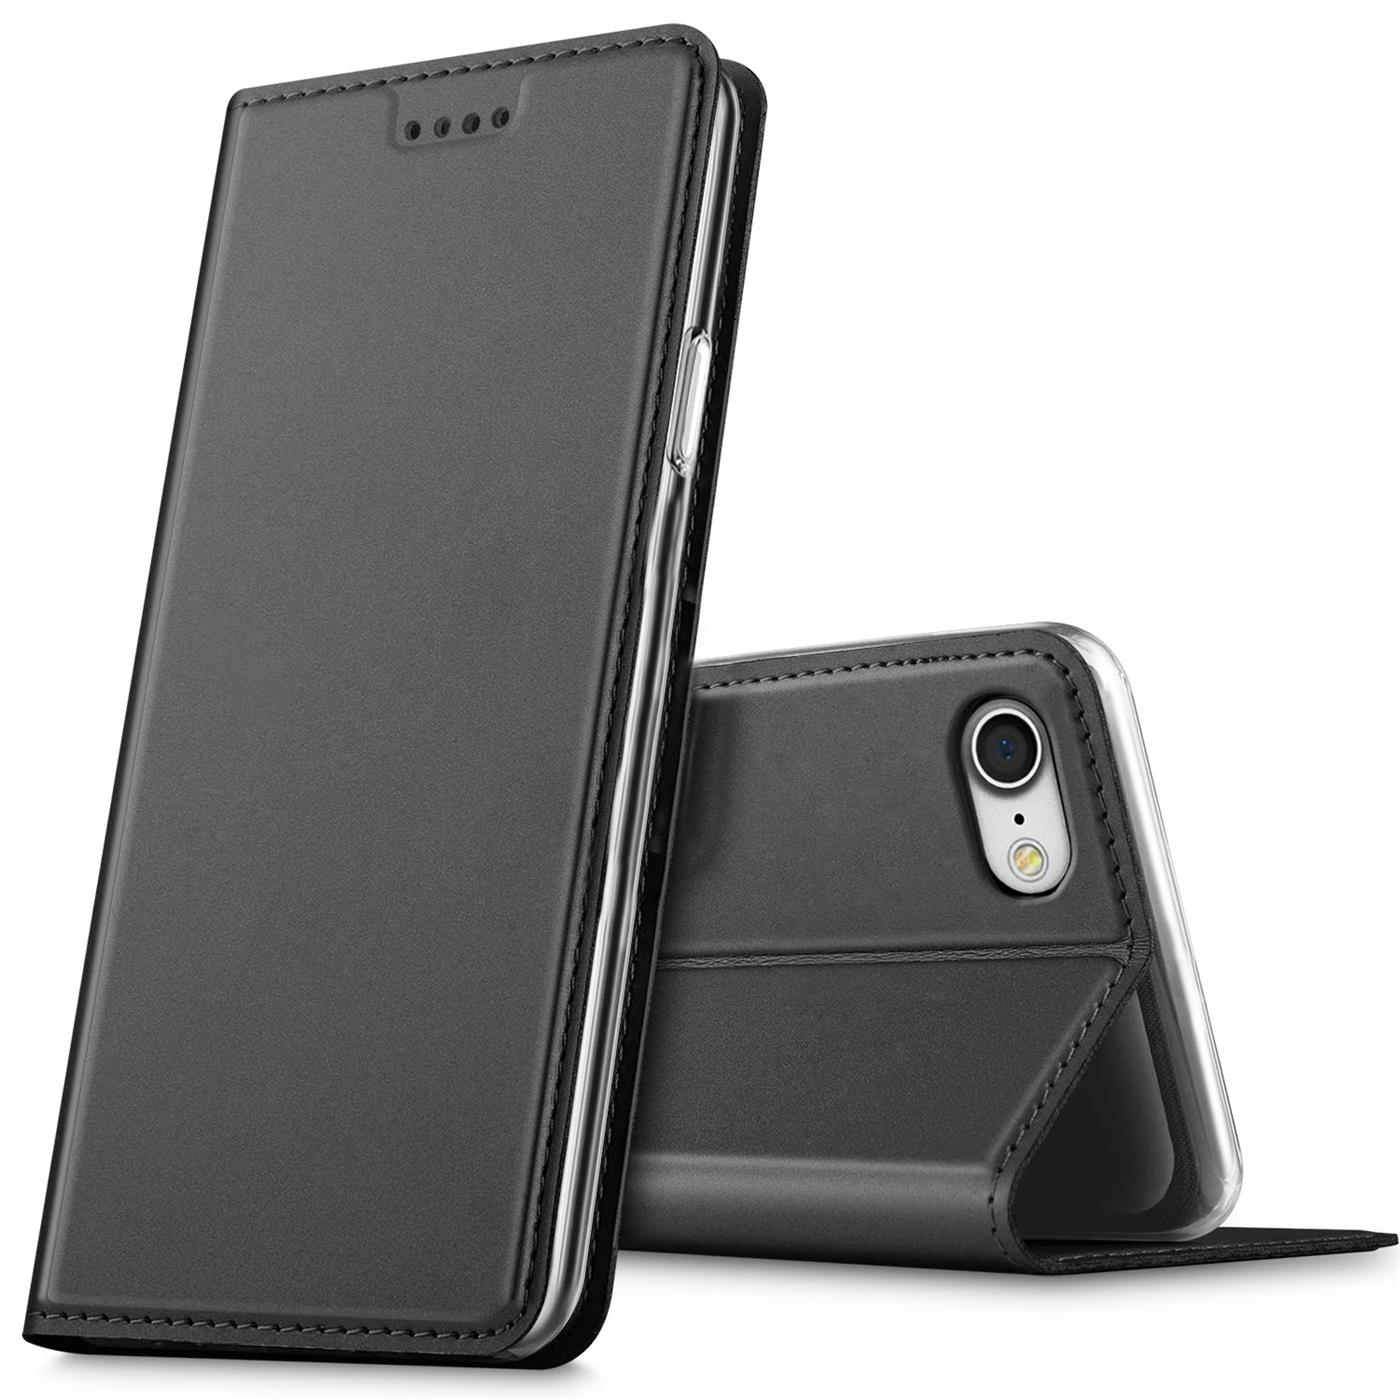 Apple-iPhone-5-5s-SE-Shockproof-Wallet-Slim-Cover-Phone-PU-Leather-Flip-Case thumbnail 6